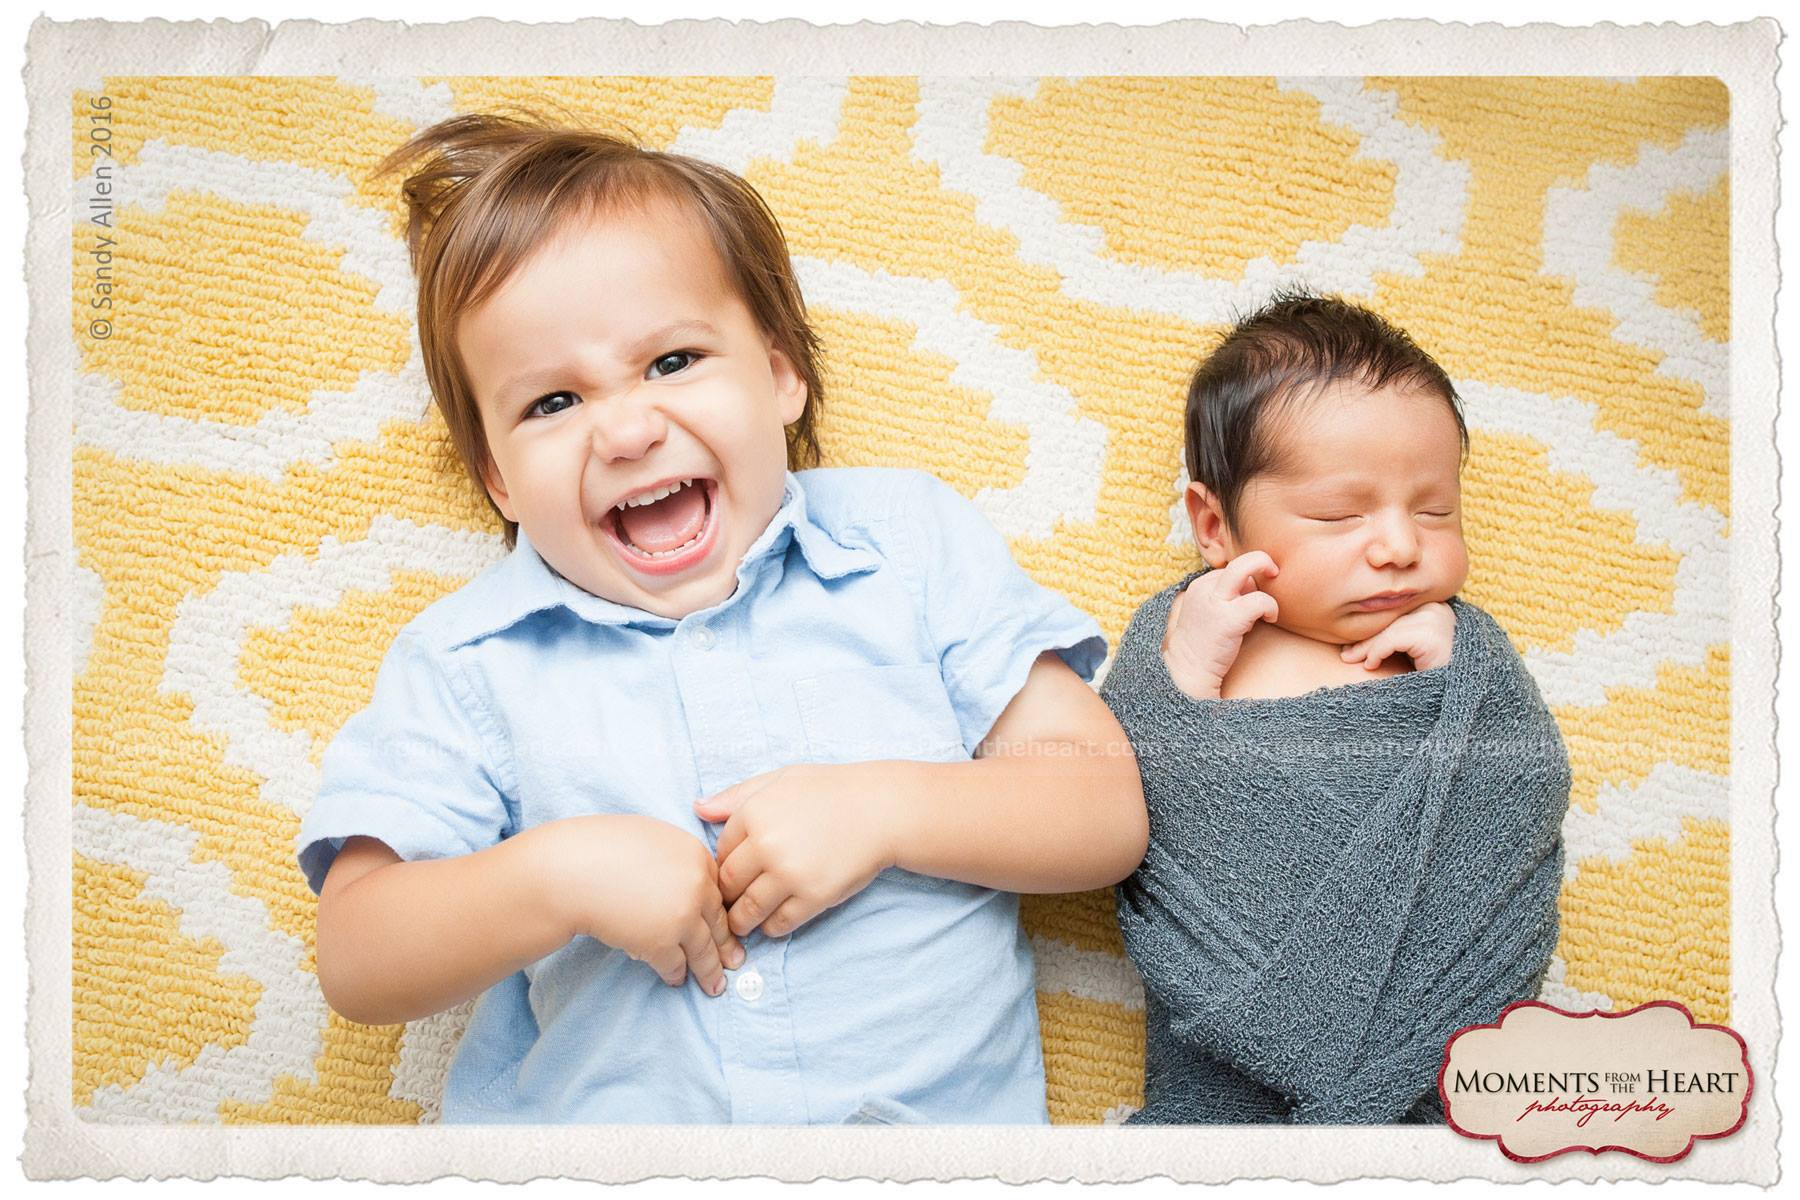 austin newborn and brother photo shoot